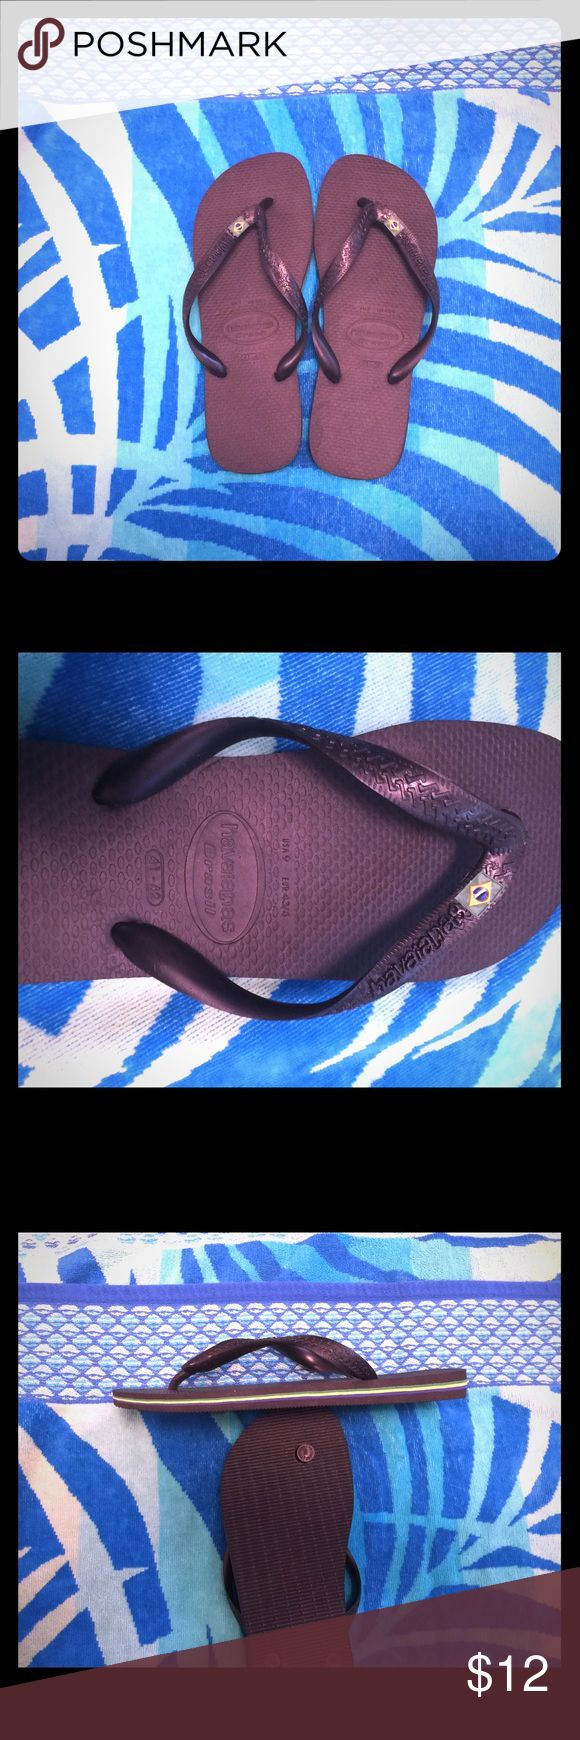 Brand new! Men's Havaianas flip flops. Size: 9. 🇧🇷 New and never worn, men's black havainas Brazil flip flops. Black with Brazilian flag and yellow, green and blue side detail. 🇧🇷 Havaianas Shoes Sandals & Flip-Flops